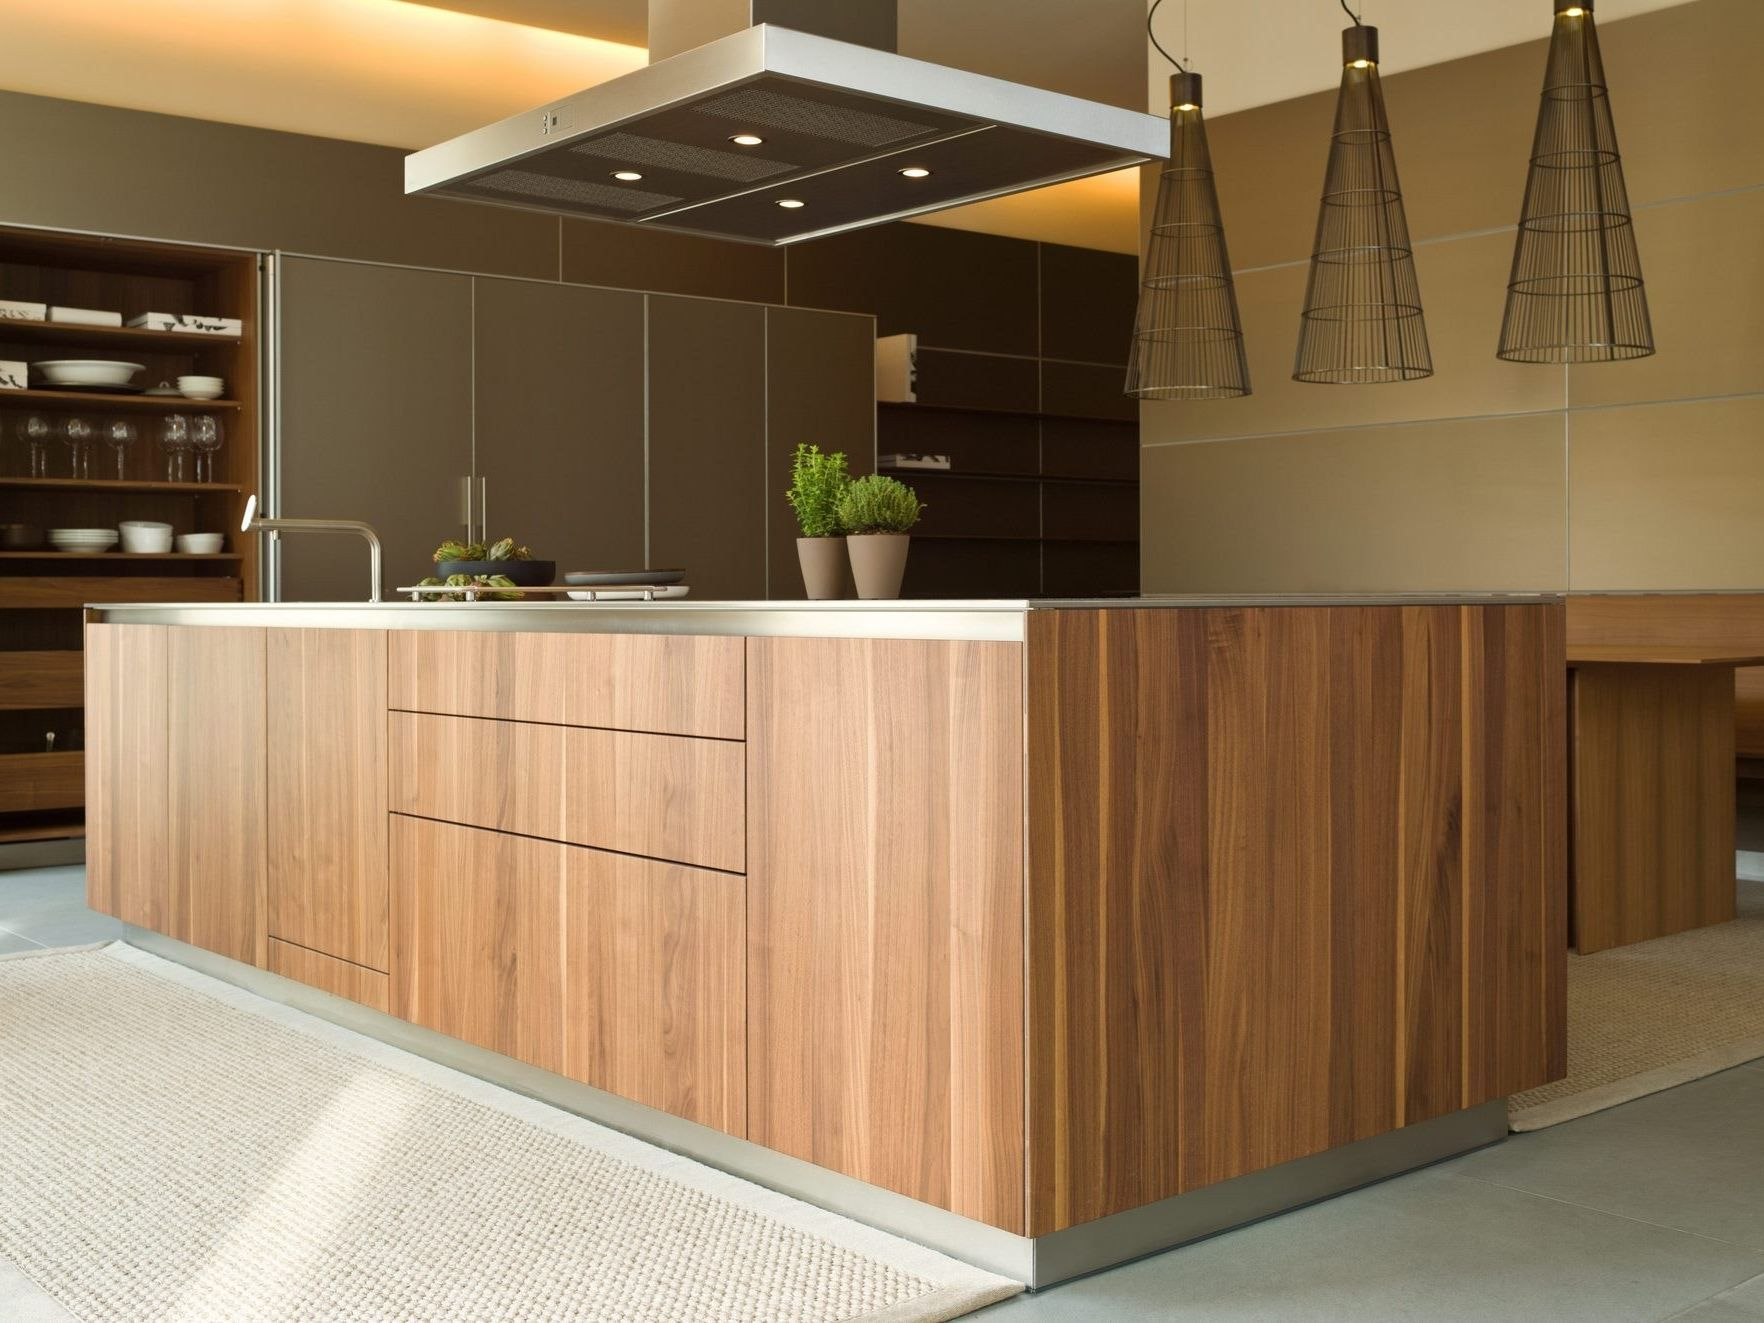 Download The Catalogue And Request Prices Of B3 Wooden Kitchen By Bulthaup Fitted Kitchen German Kitchen Design Kitchen Design Styles Kitchen Design Trends